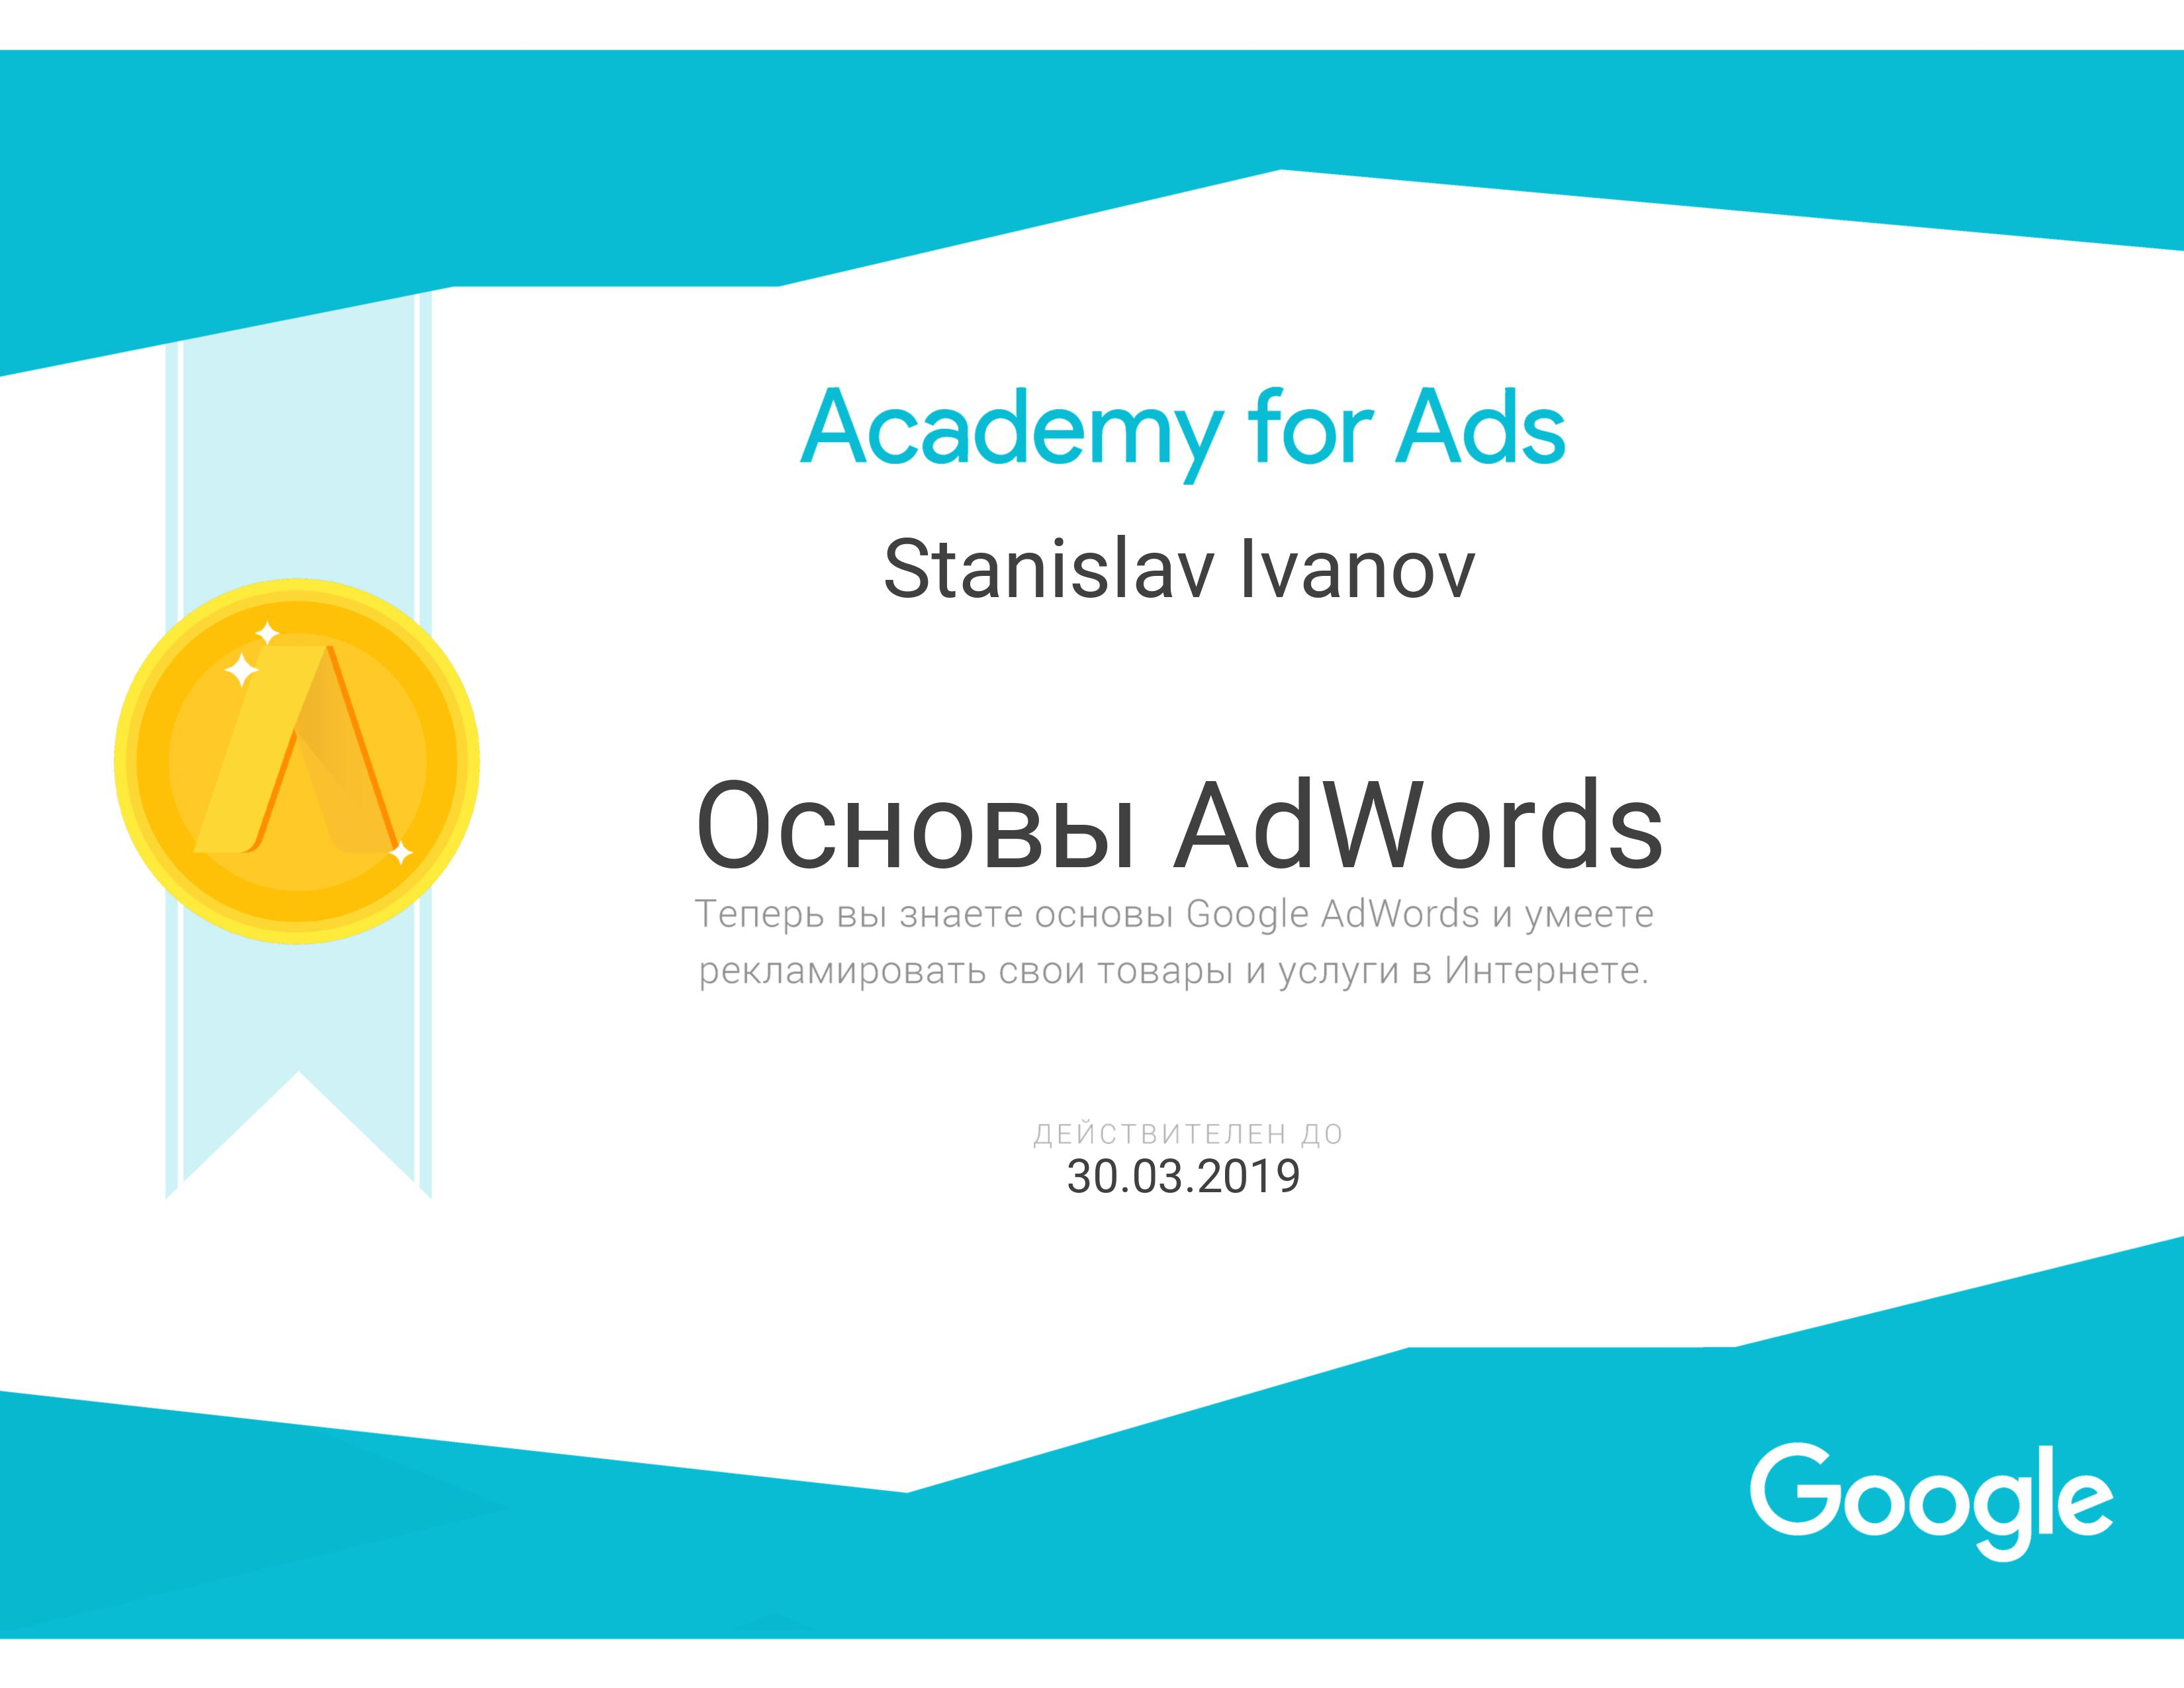 stiv — Google AdWords